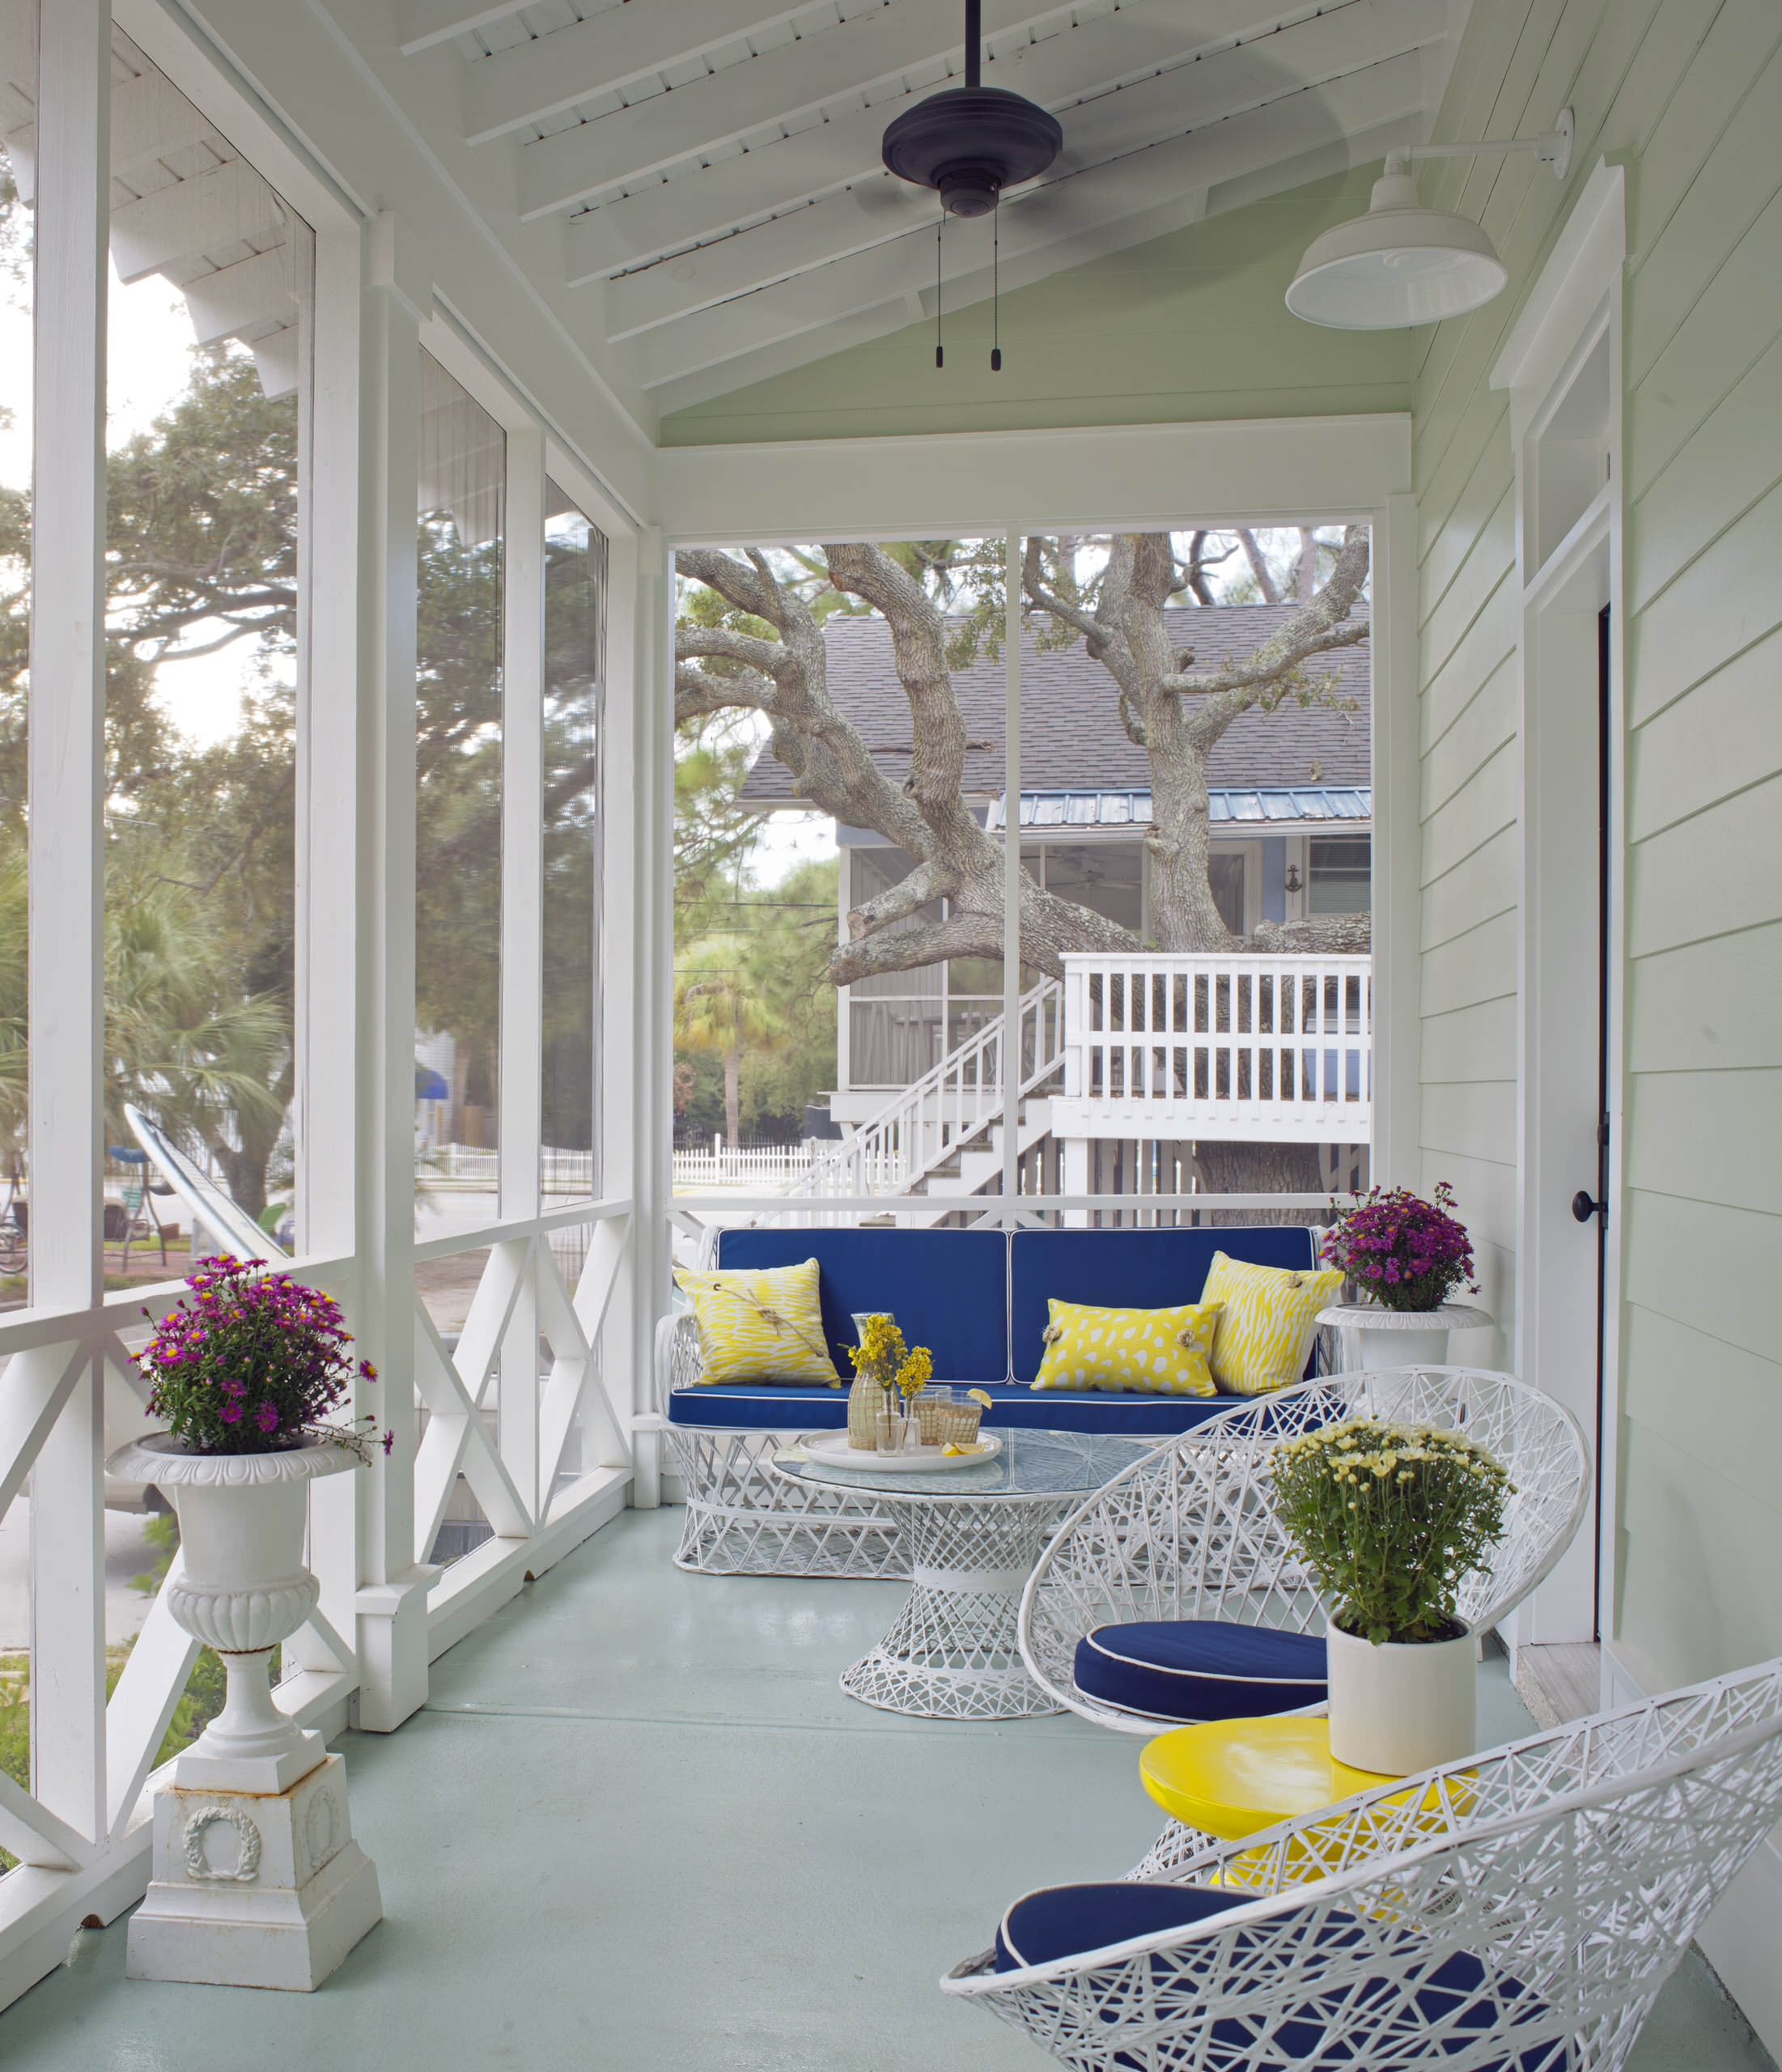 75 Beautiful Screened In Porch Pictures Ideas November 2020 Houzz